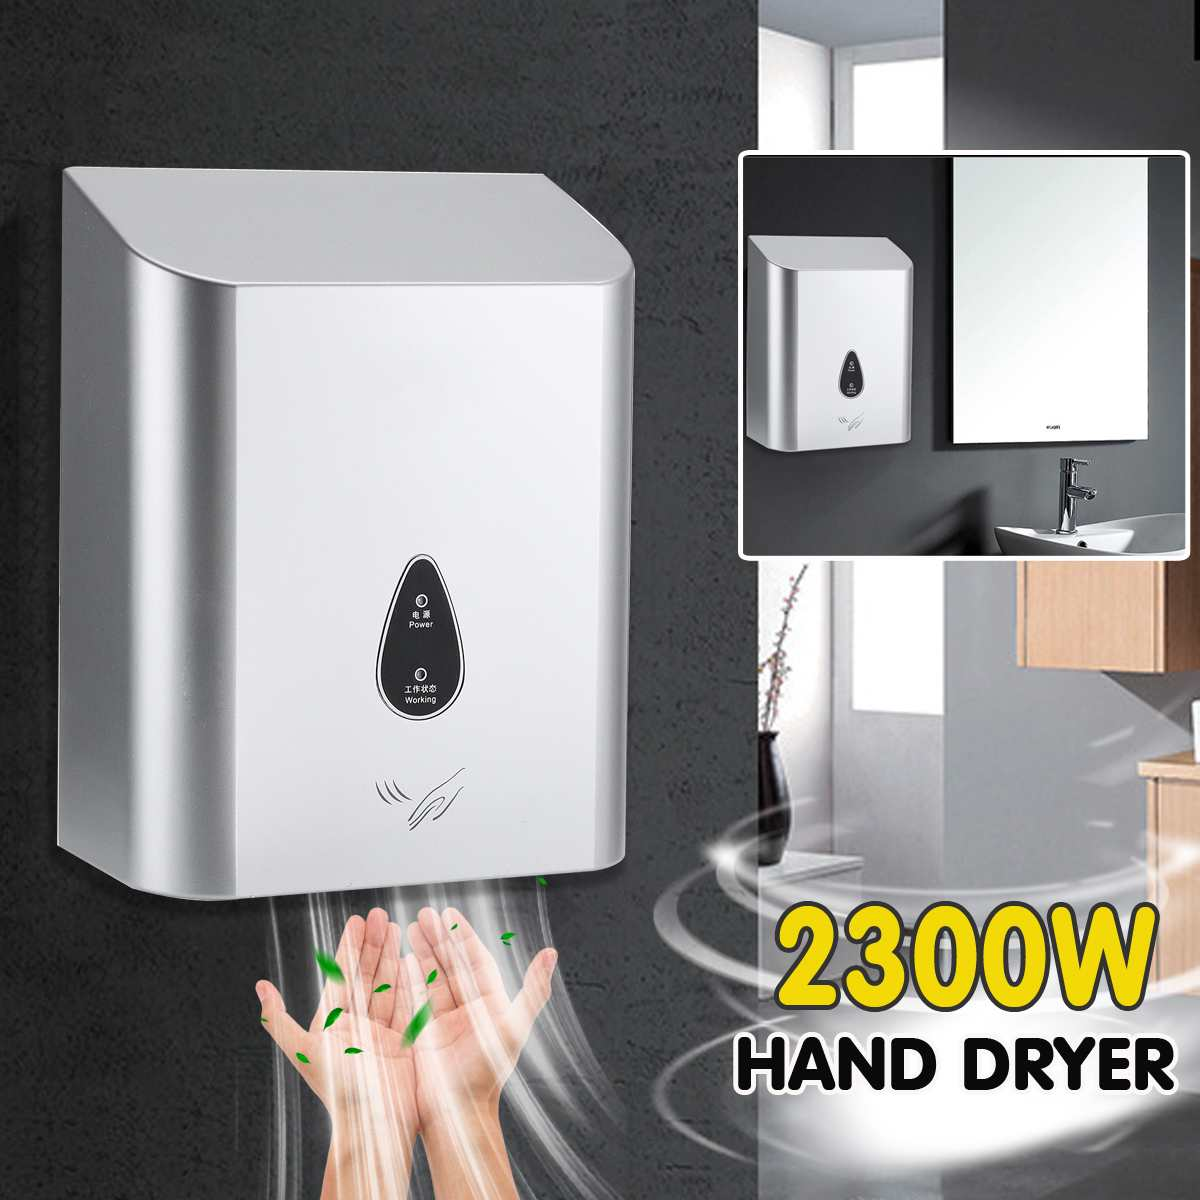 Household Appliances Aike 304 Stainless Steel Automatic Sensorjet Hand Dryer High Speed Airflow For Home Hotel Airport Hands Drying Machine Ak2805 Hand Dryers